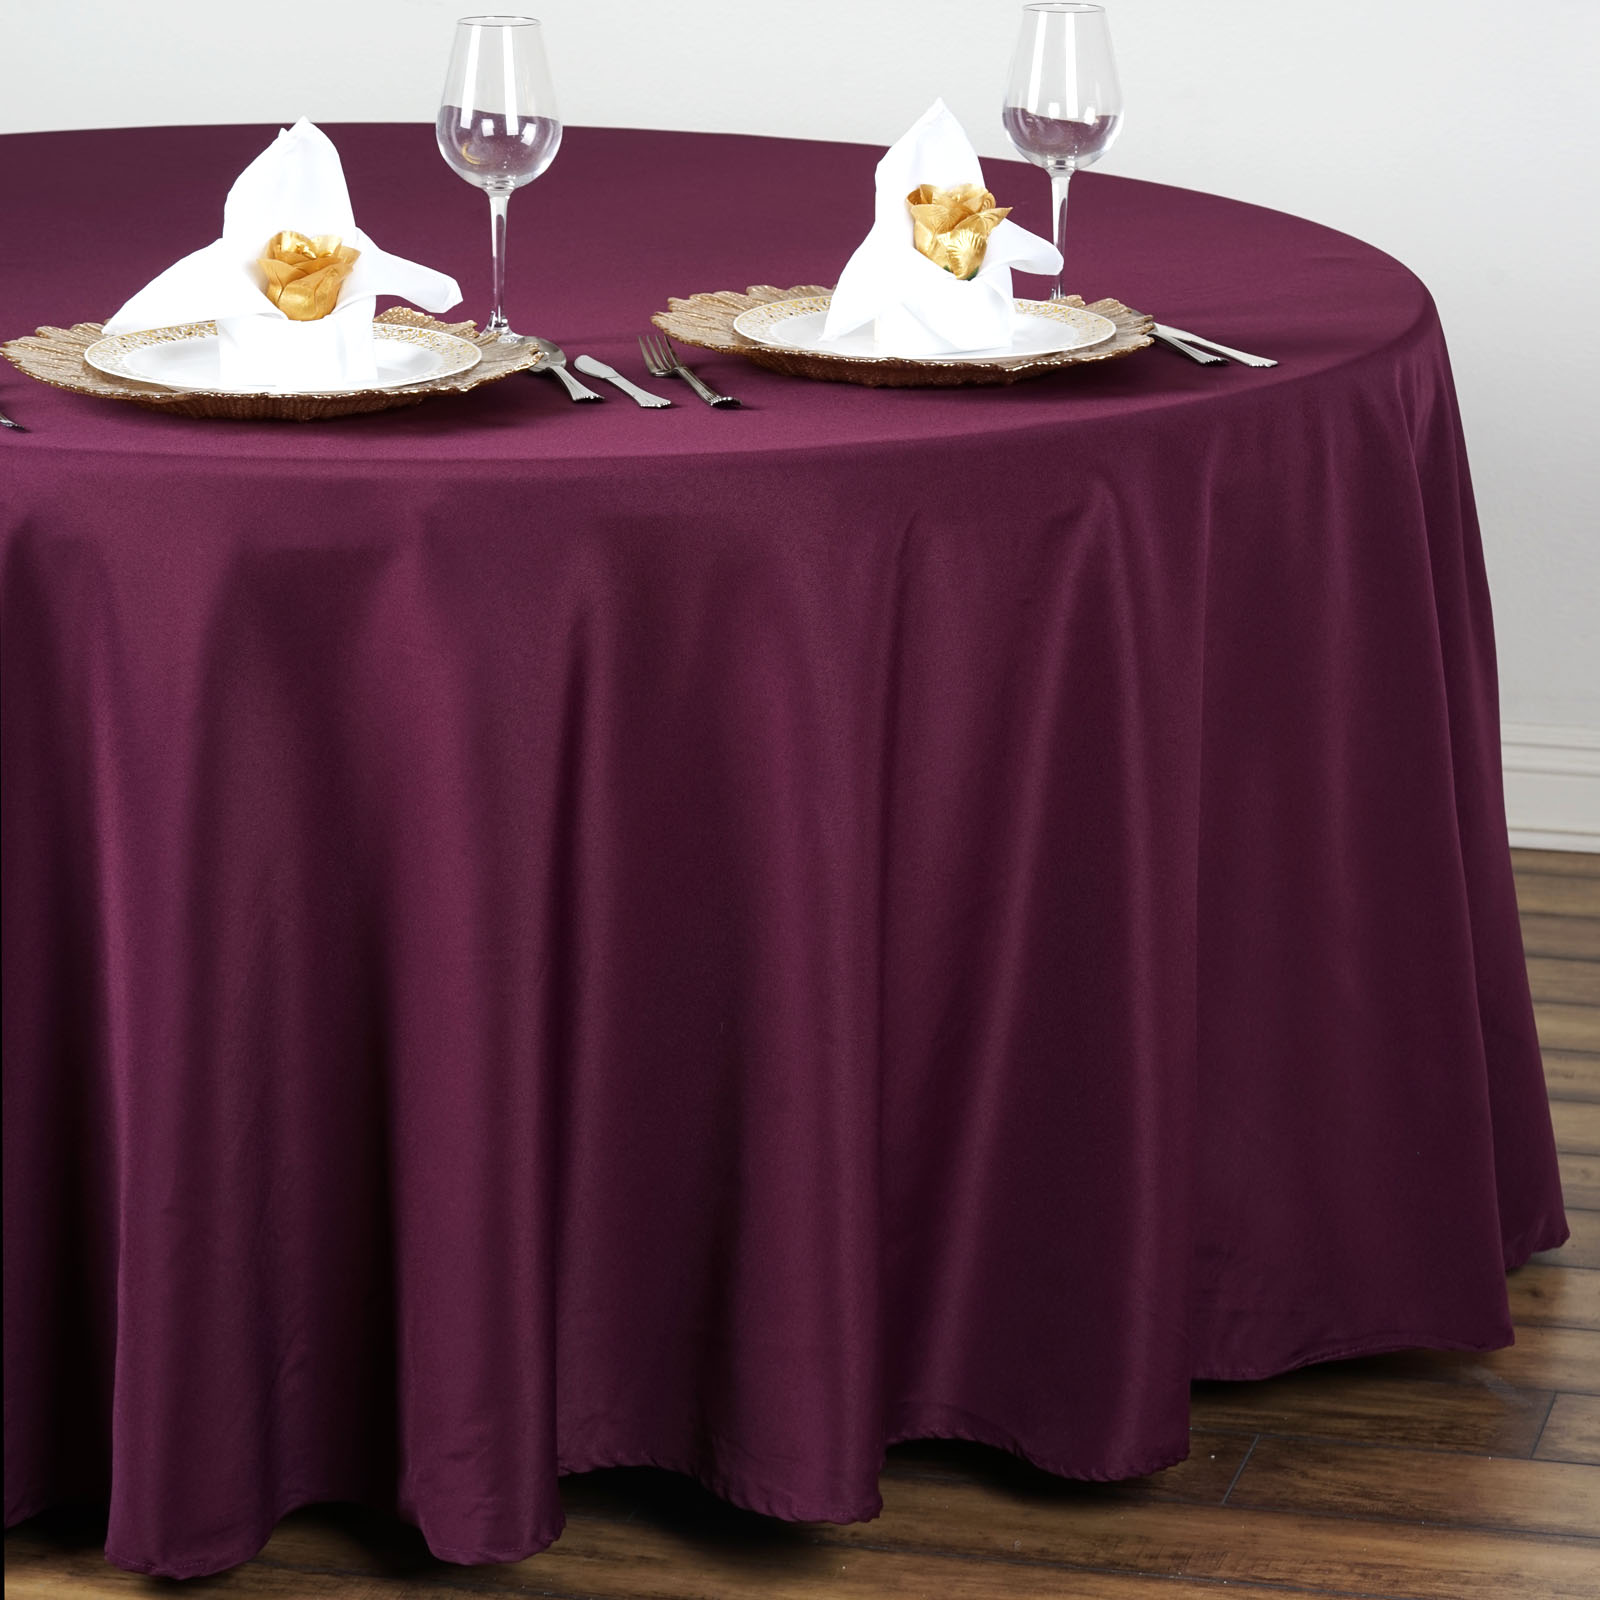 """BalsaCircle 108"""" Round Polyester Tablecloth for Party Wedding Reception Catering... by BalsaCircle"""